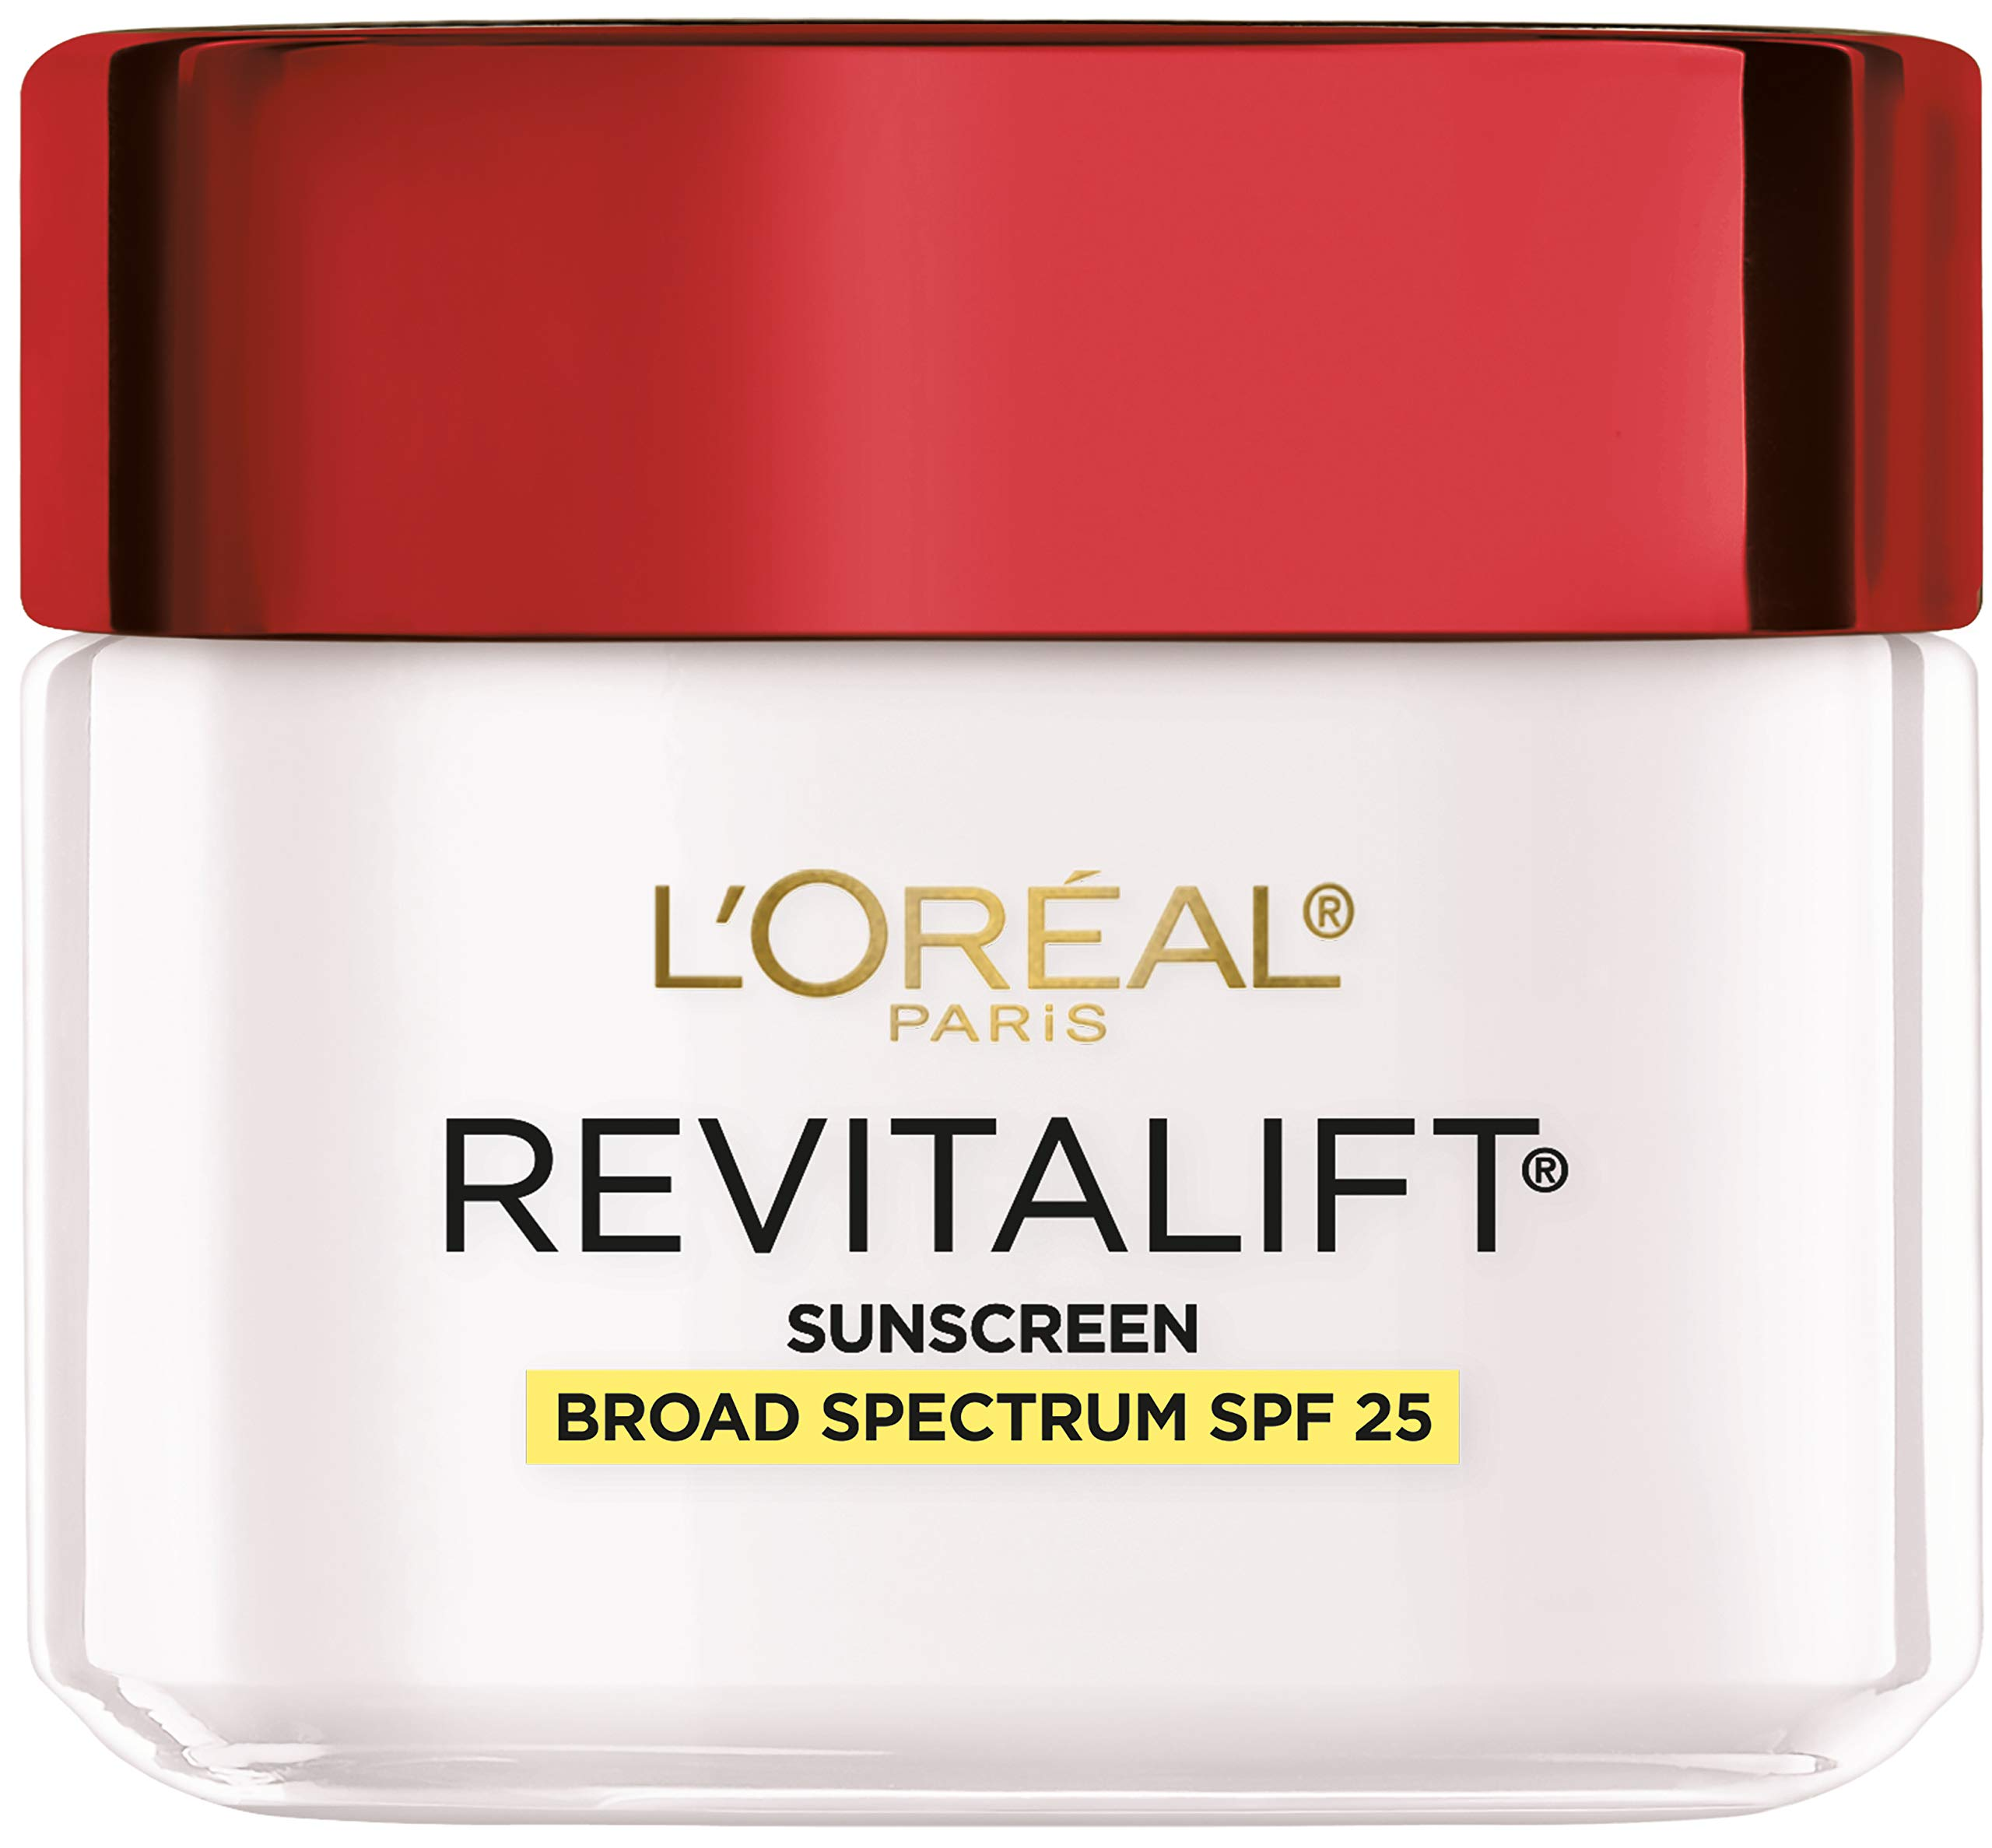 Face Moisturizer with SPF 25 by L'Oréal Paris Skin Care, Revitalift Anti-Aging Day Cream with SPF 25 Sunscreen and Pro-Retinol, Paraben Free, Suitable for Sensitive Skin, 2.55 oz by L'Oreal Paris